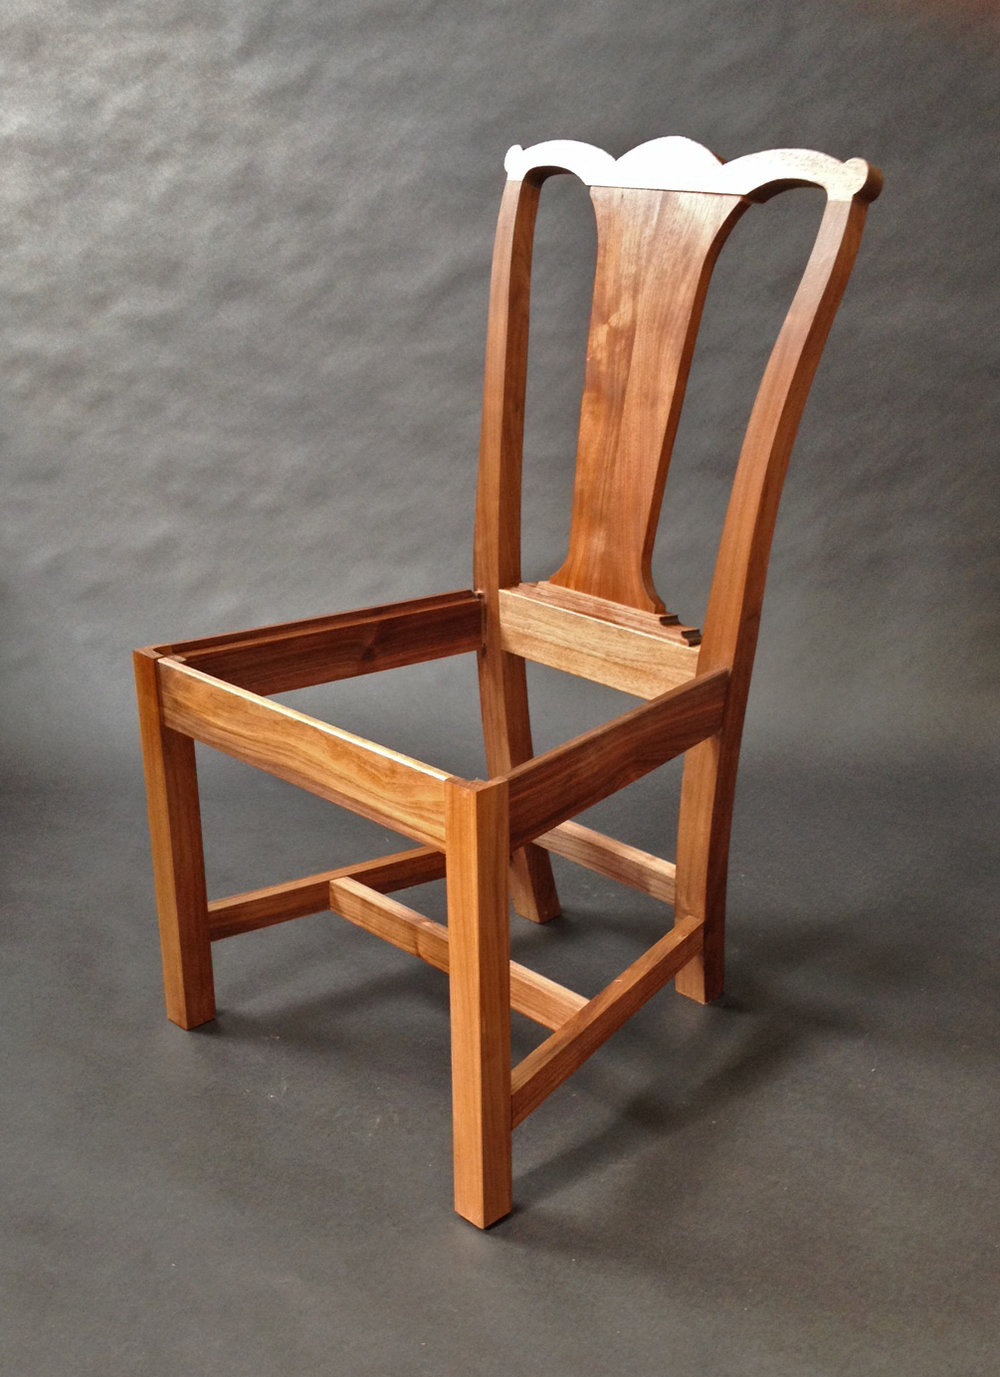 the classic chippendale chair u2013 a great project to build by hand